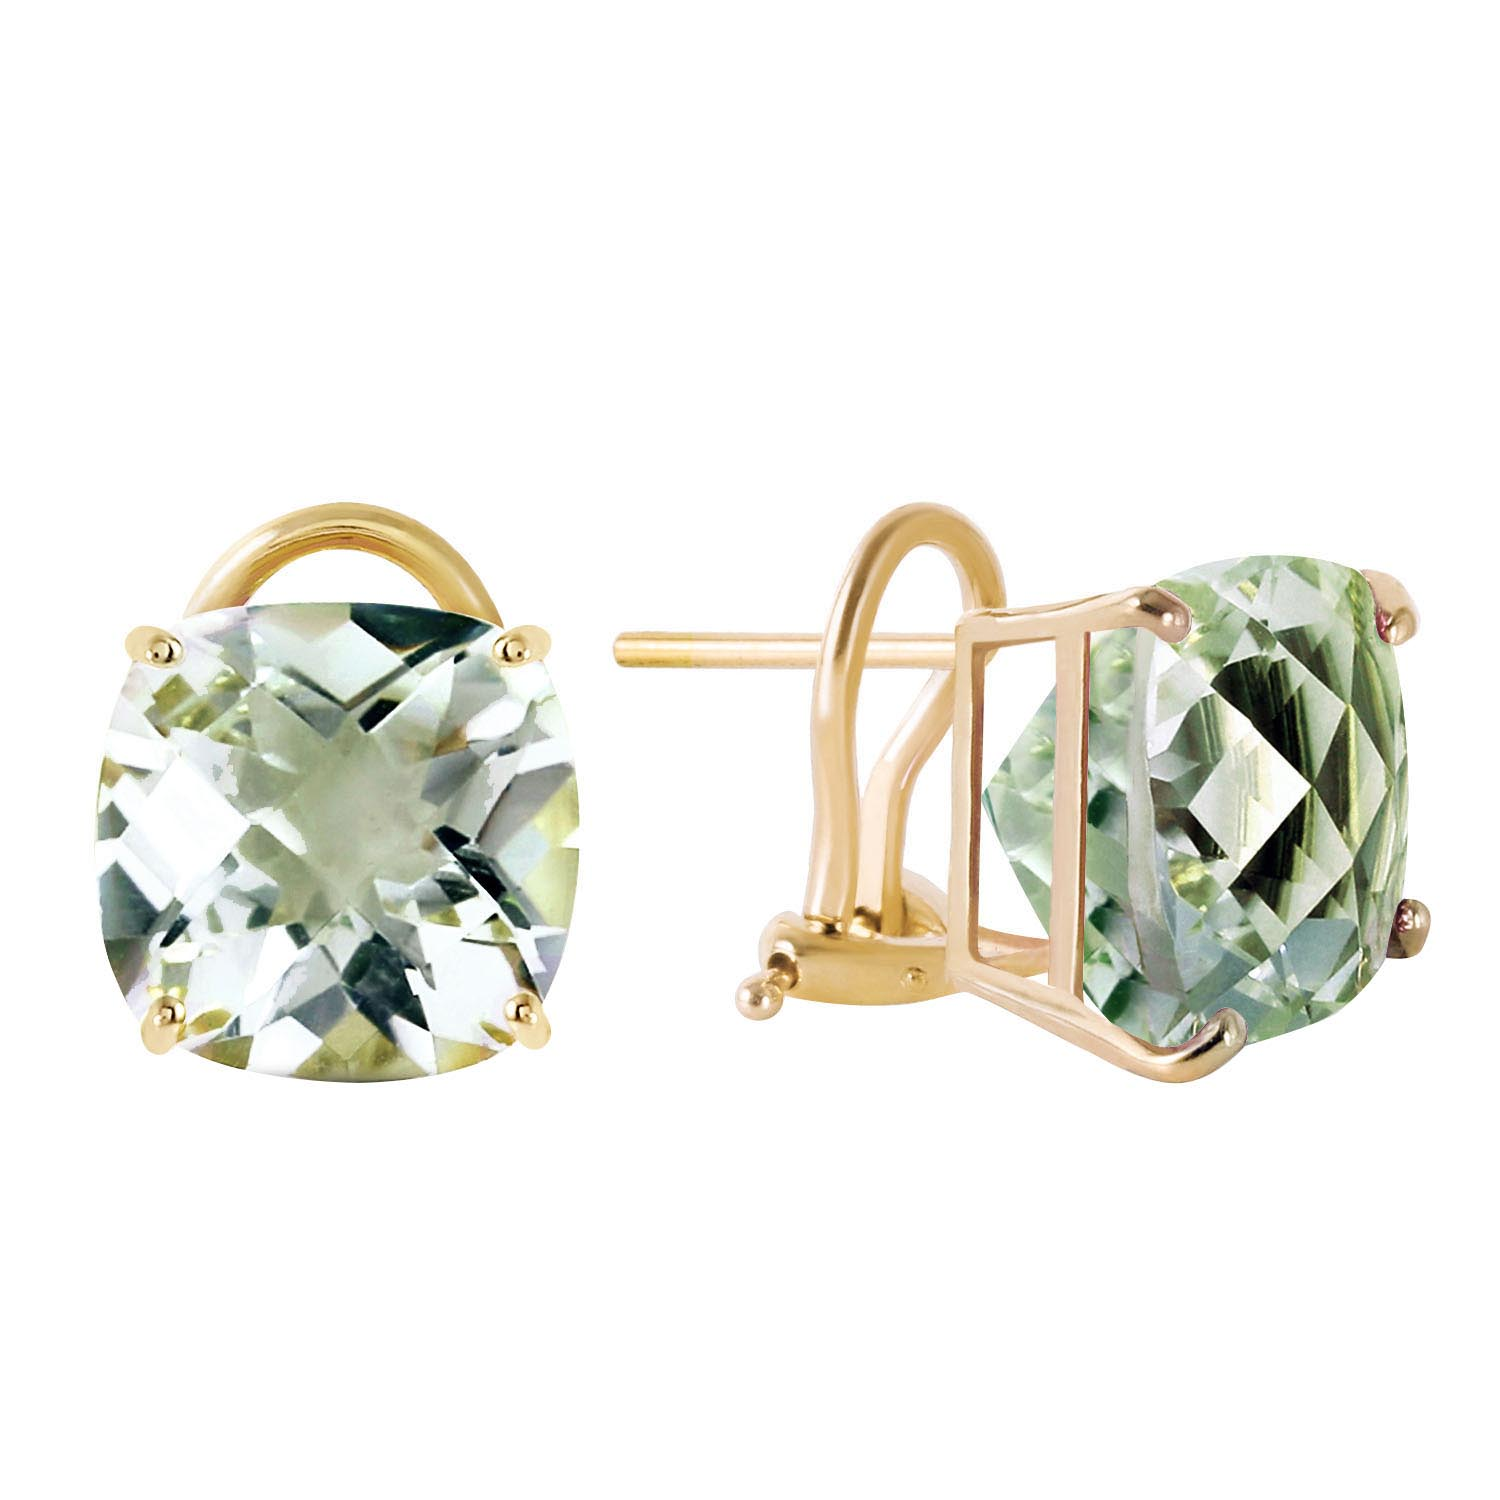 Green Amethyst Stud Earrings 7.2ctw in 9ct Gold